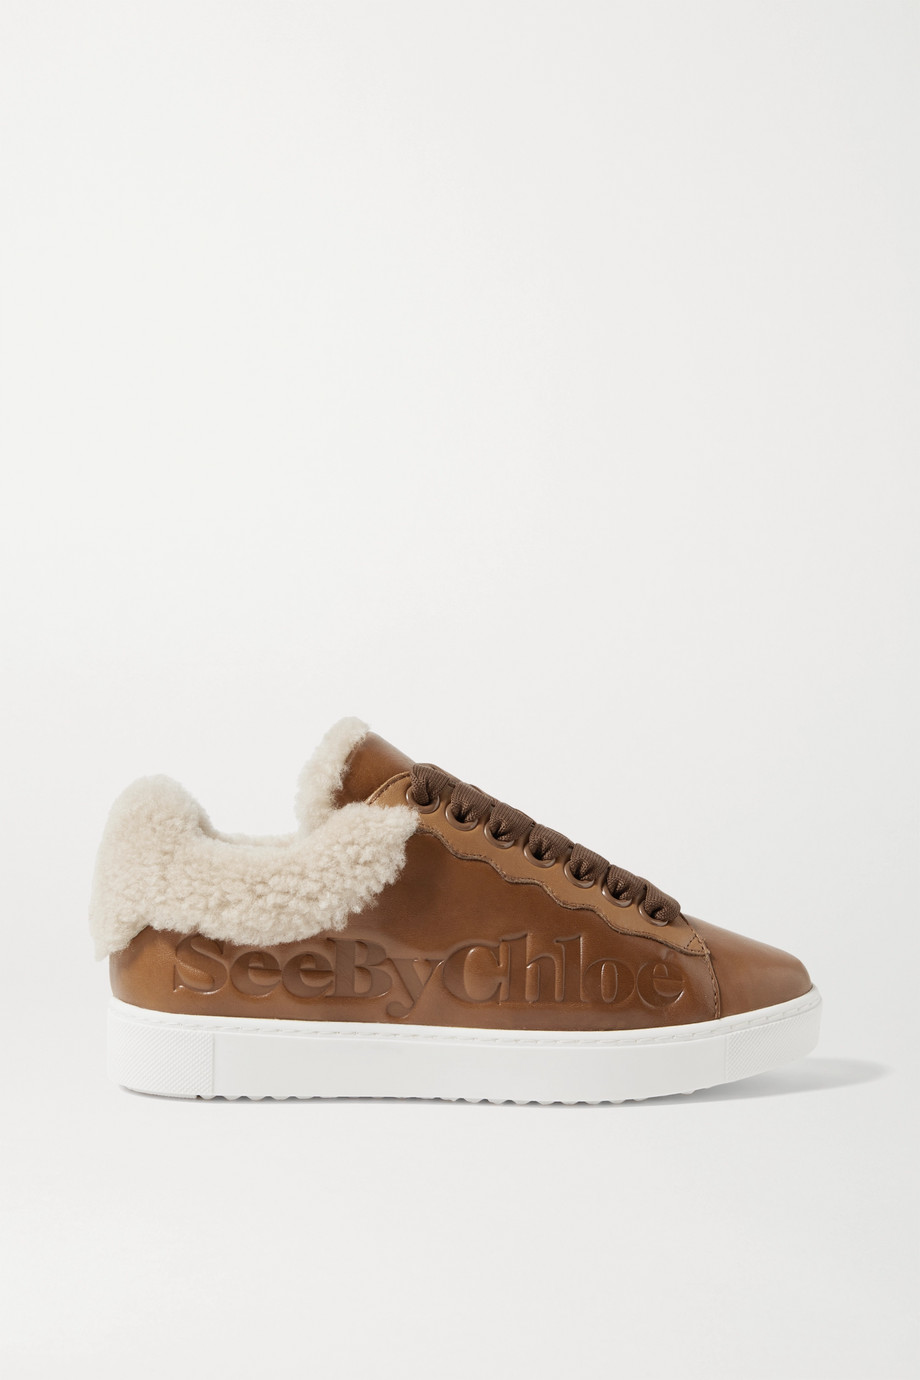 SEE BY CHLOÉ Shearling-trimmed logo-debossed leather sneakers